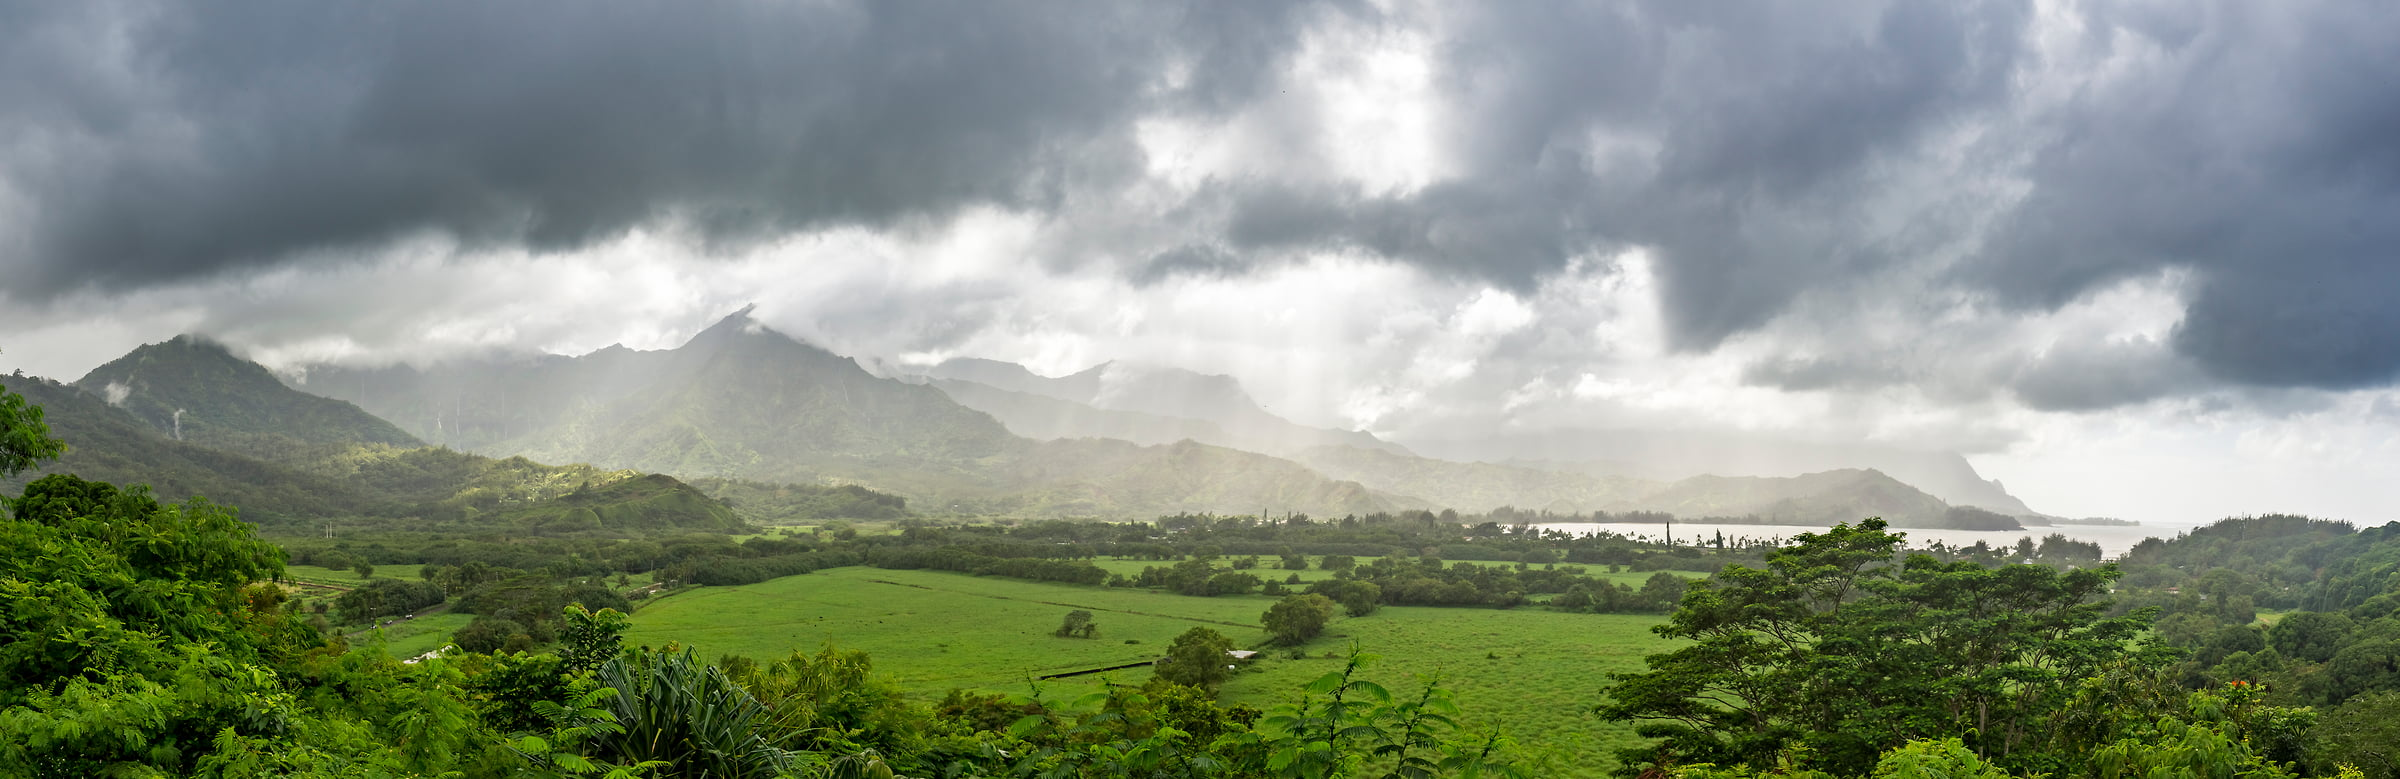 91 megapixels! A very high resolution, large-format VAST photo print of Hanalei Bay in Kauai, Hawaii; tropical landscape photo created by Justin Katz